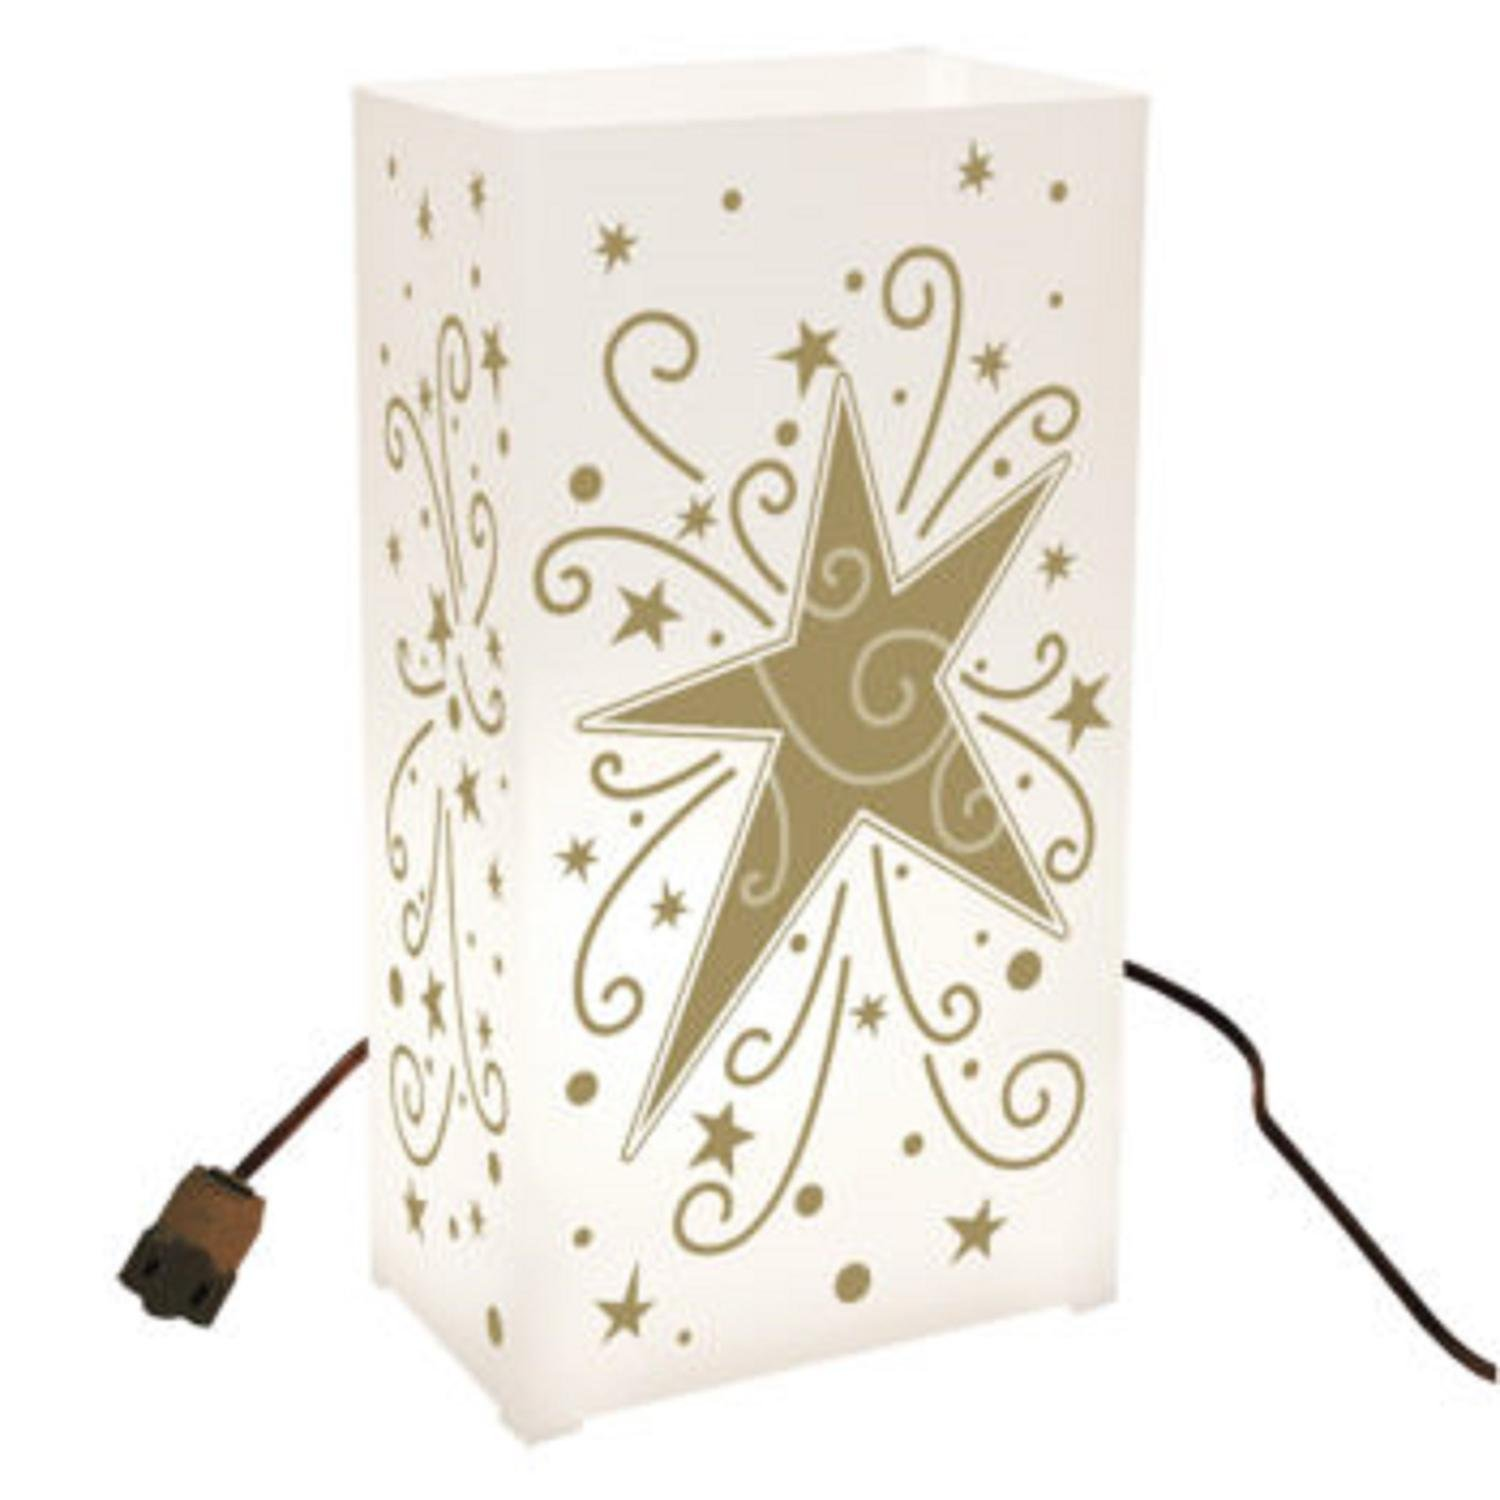 CC Home Furnishings Set of 10 Lighted Celebration Gold Star and Swirl Luminaria Pathway Markers